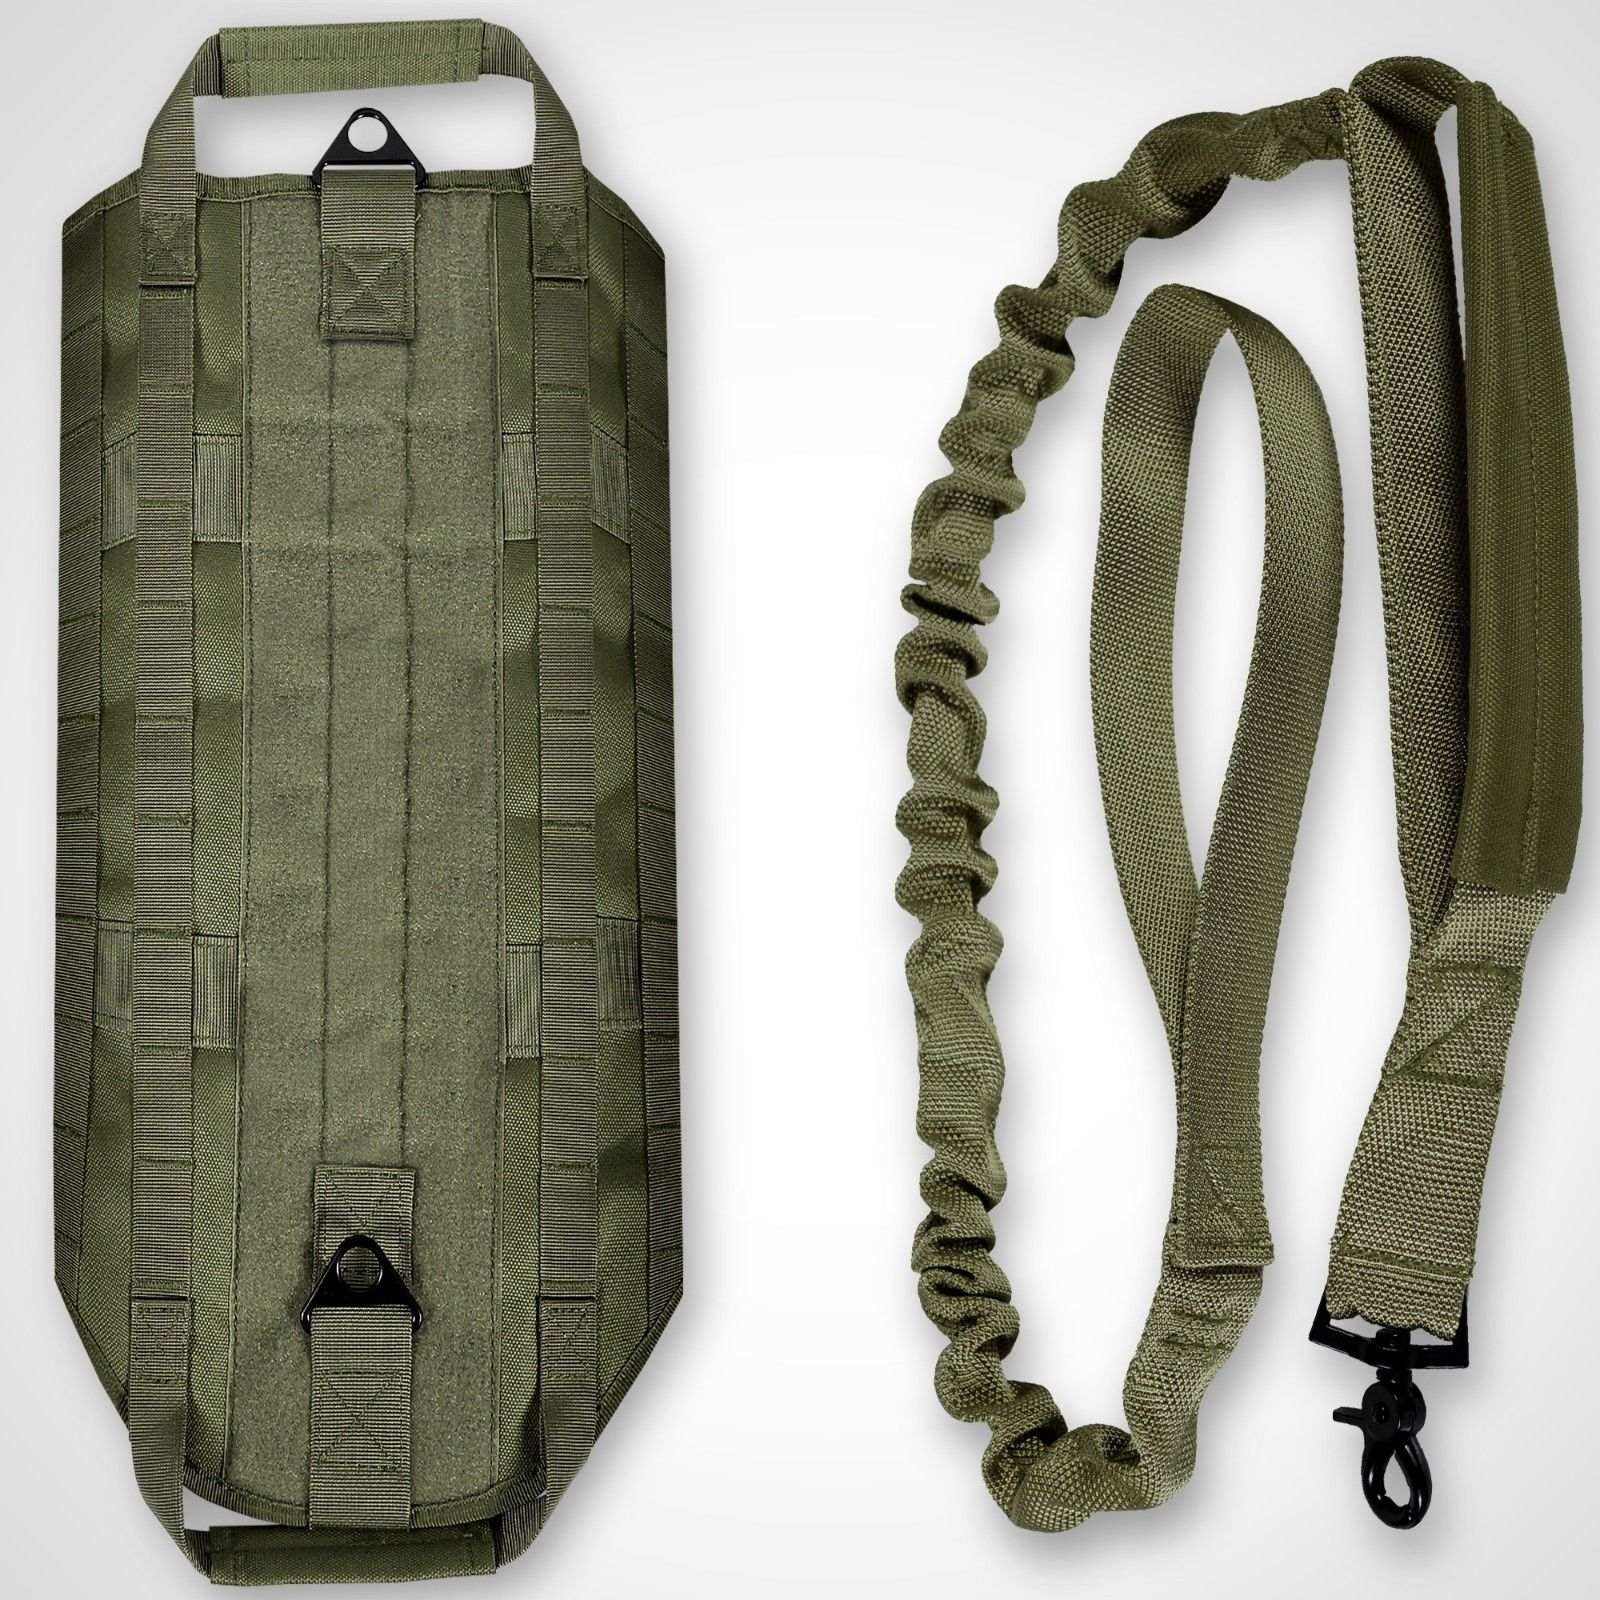 LIVABIT [ OD Green ] K9 Service Dog Tactical Molle Vest Harness + Matching Heavy Duty Bungee Leash Strap X-Small [ Also For Cats & Puppies ]